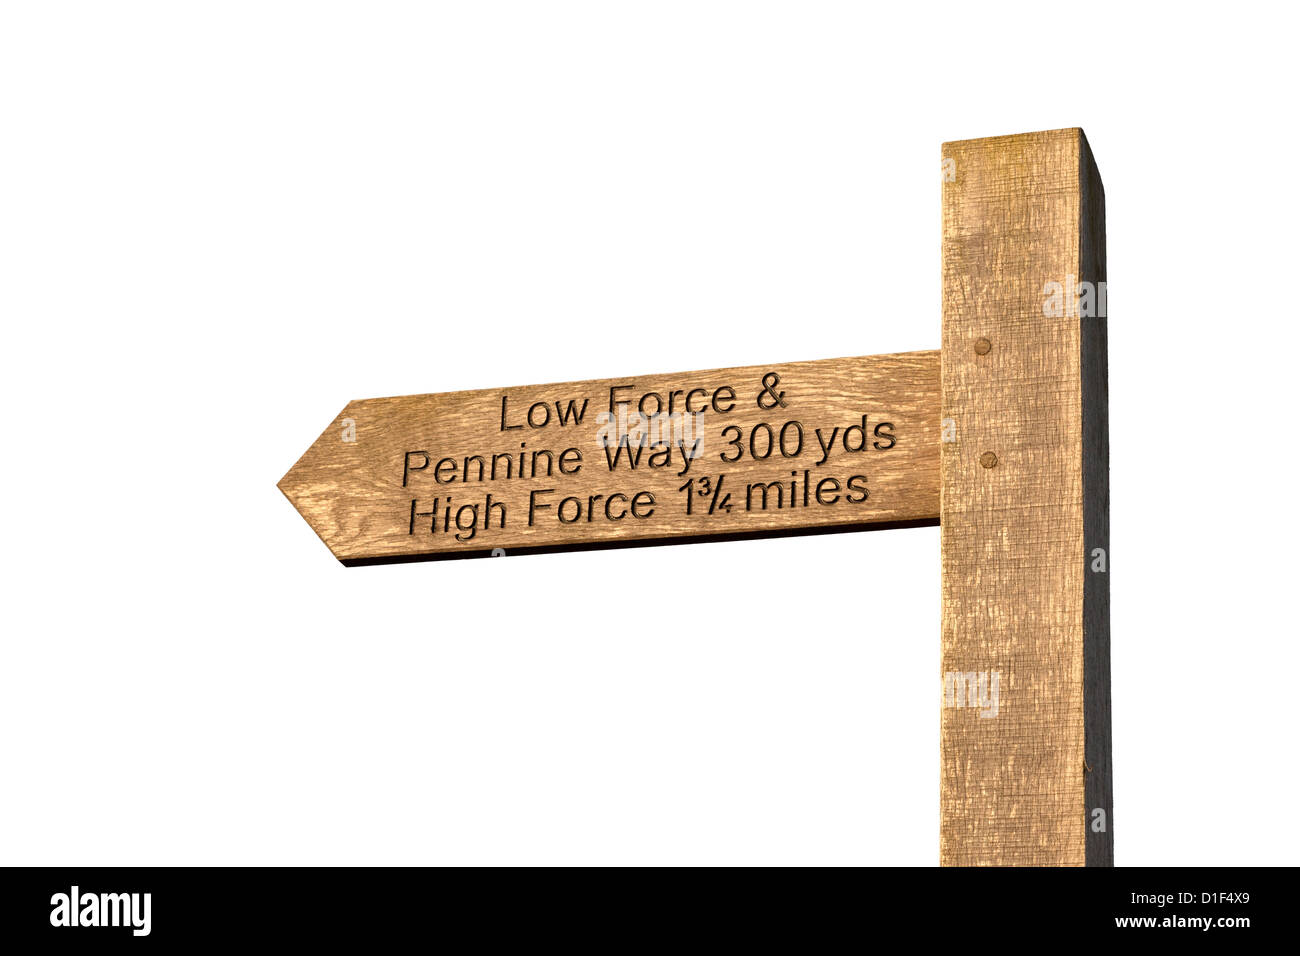 Cut Out of a Sign Post Directing Walkers to Low Force, High Force and the Pennine Way, Bowlees Upper Teesdale County - Stock Image